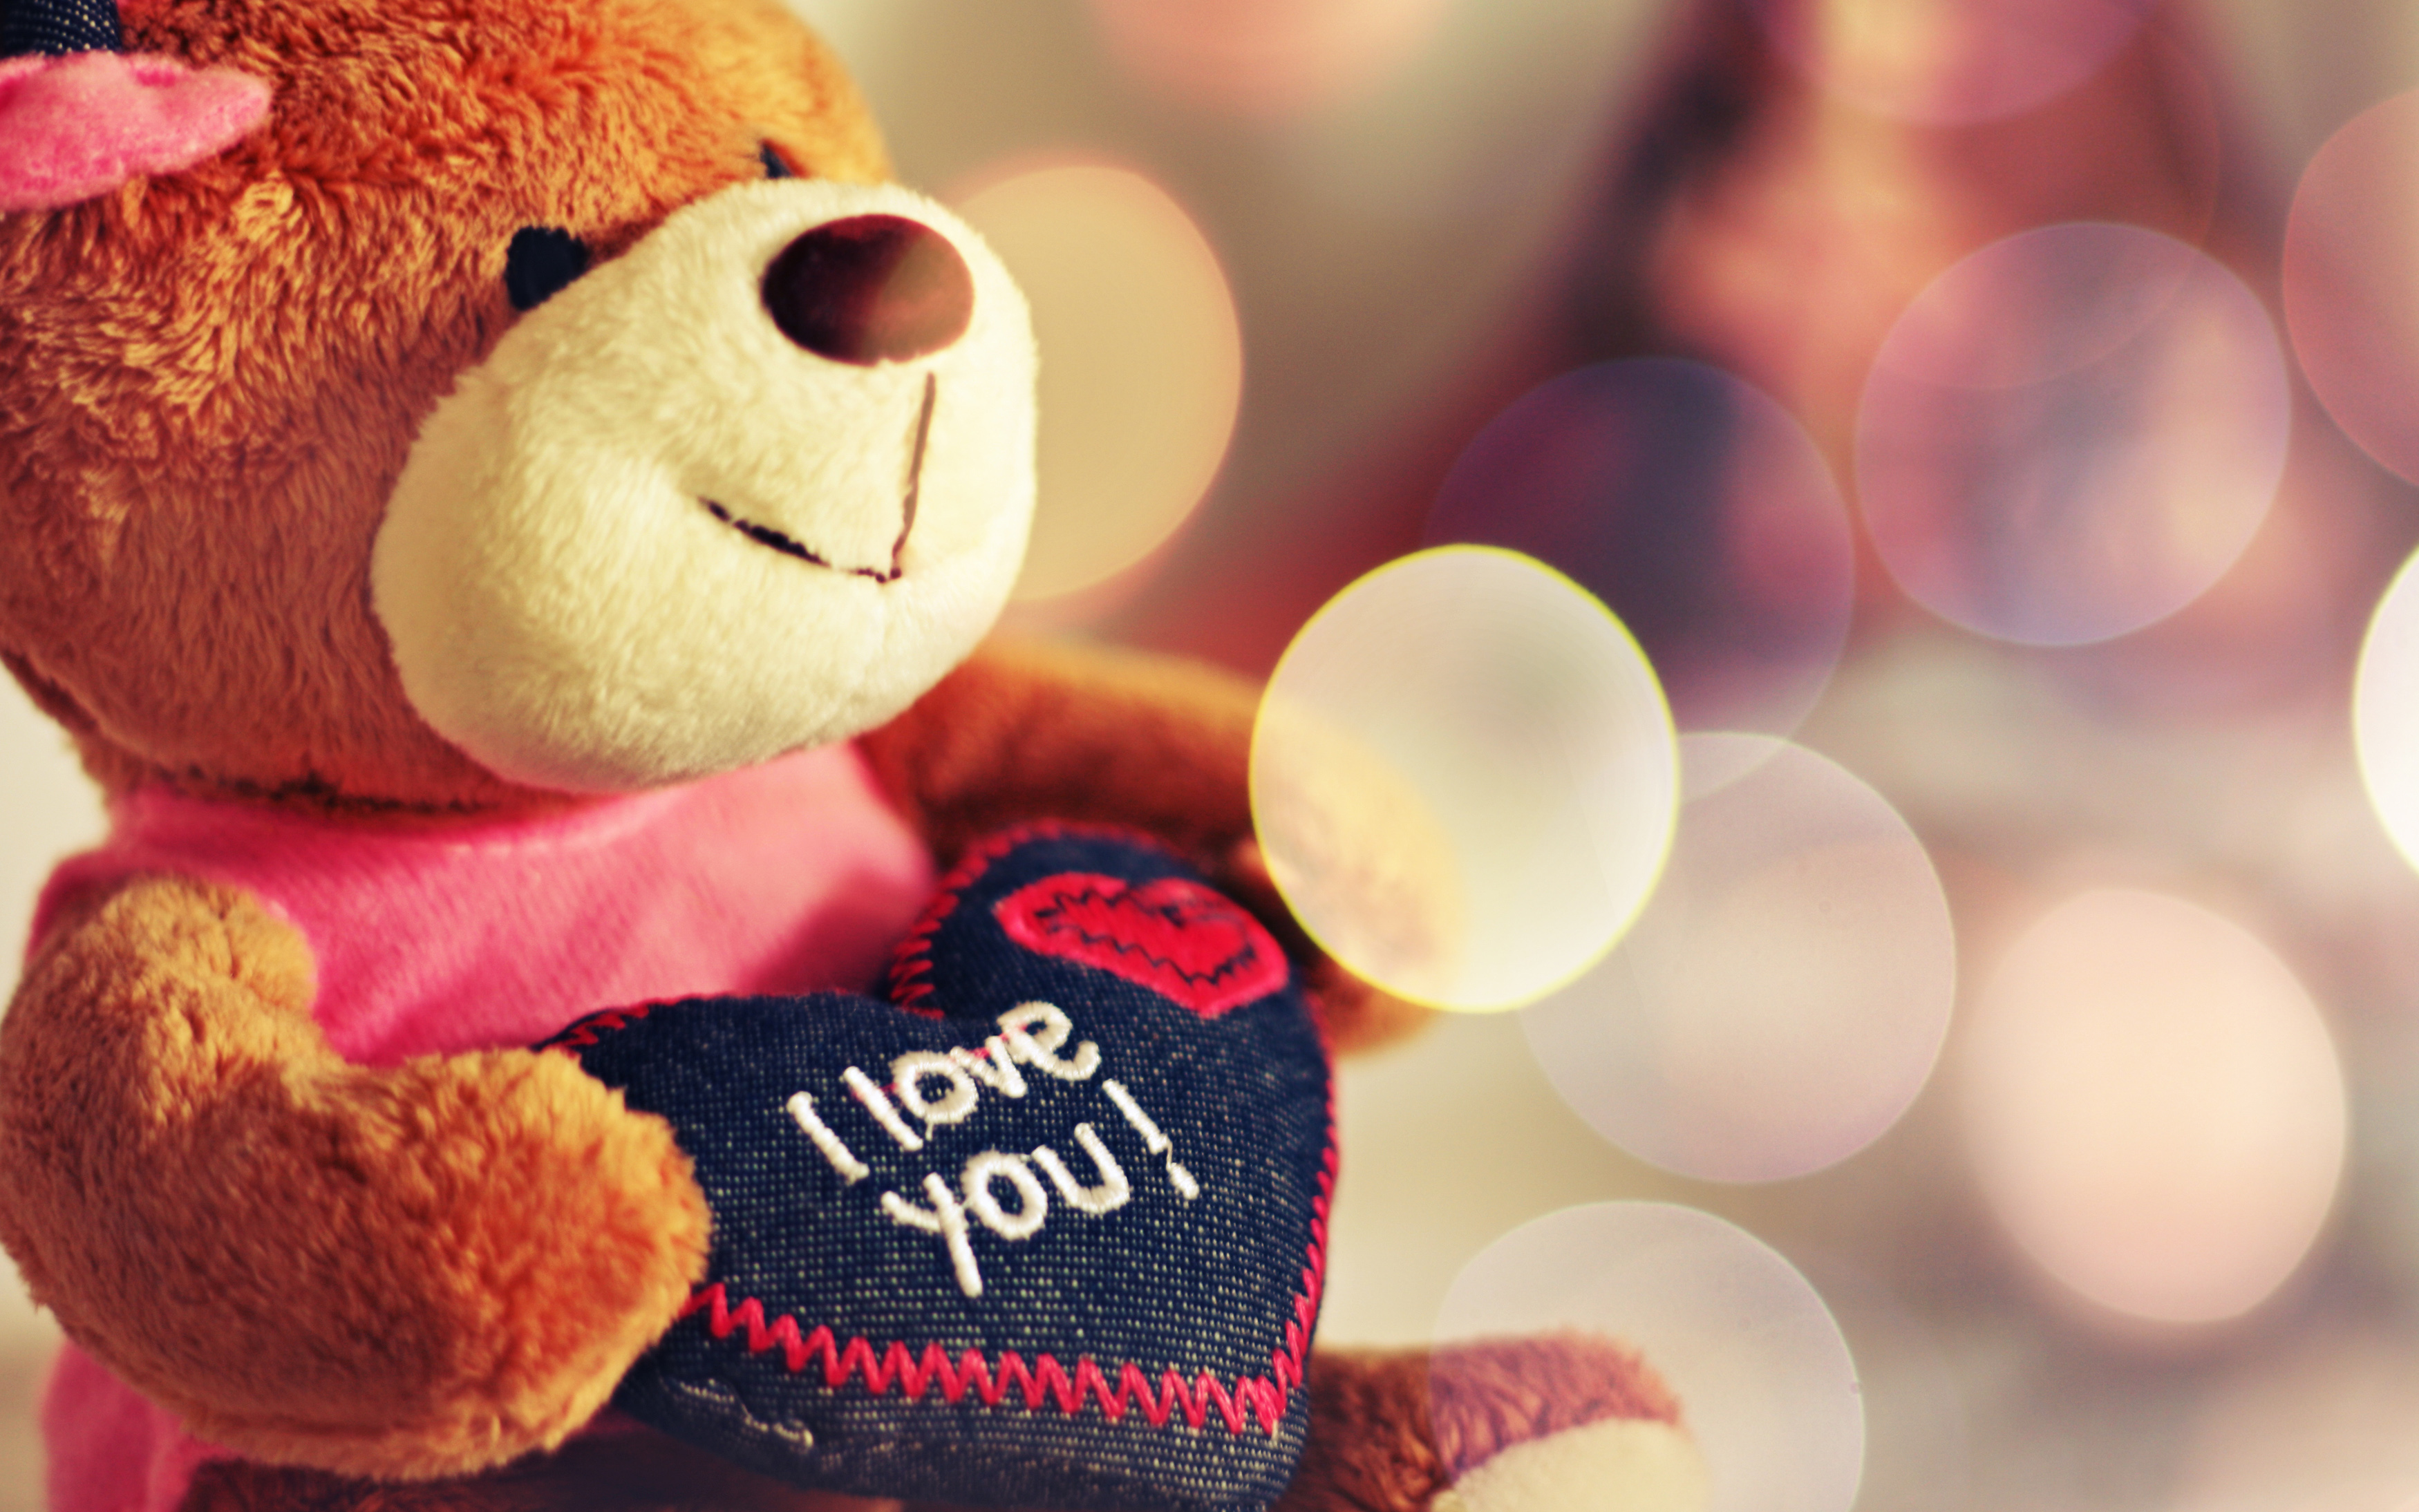 I Love You Teddy Bear7210613699 - I Love You Teddy Bear - Teddy, Season, Love, Bear